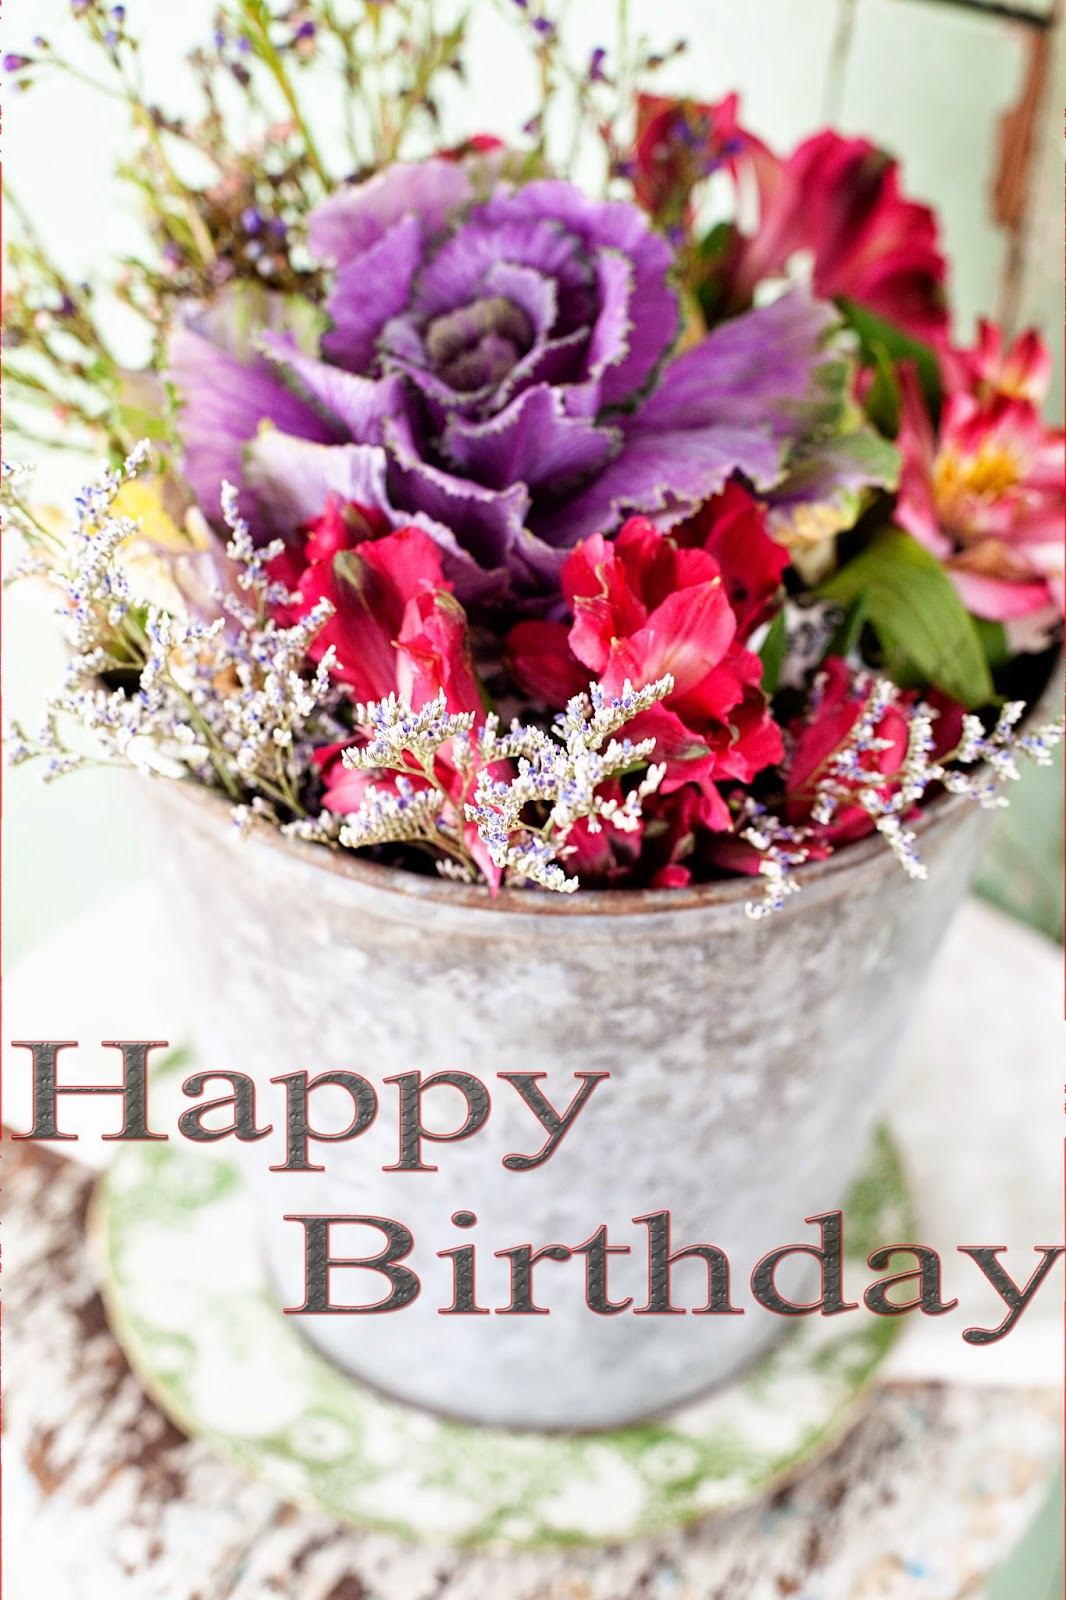 Happy birthday cake and flowers images greetings wishes images happy birthday flowers images izmirmasajfo